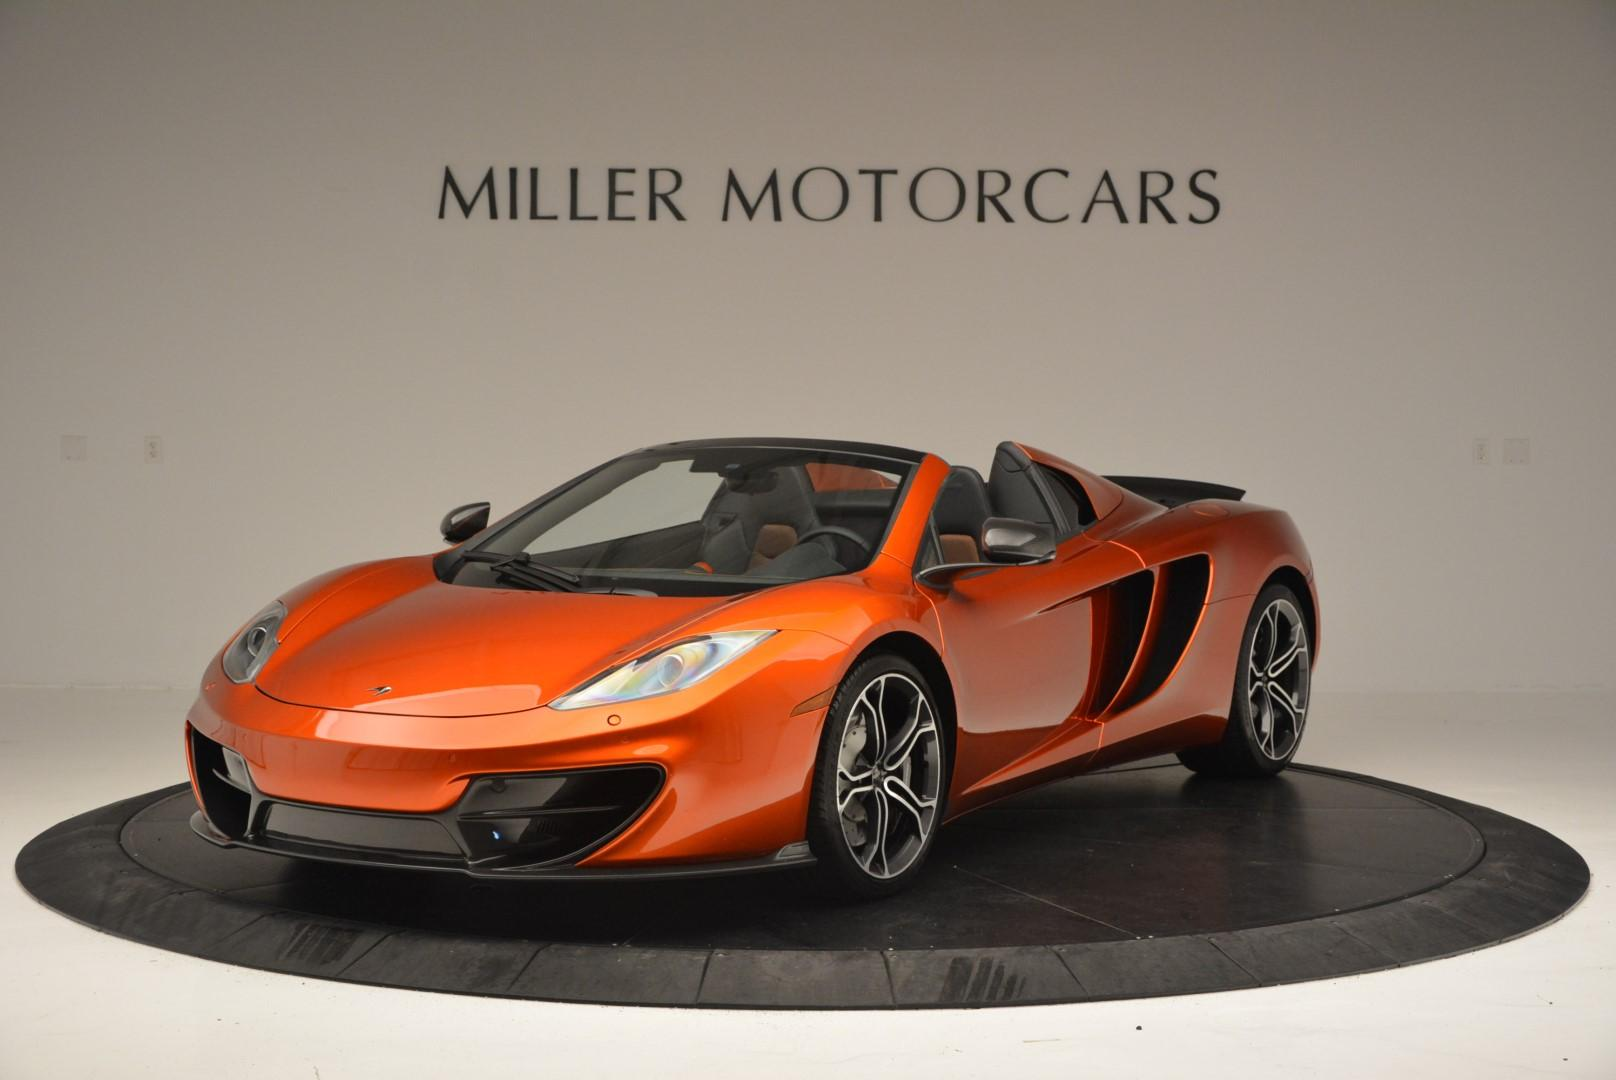 Used 2013 McLaren MP4-12C Base For Sale In Greenwich, CT. Alfa Romeo of Greenwich, 3070 66_main